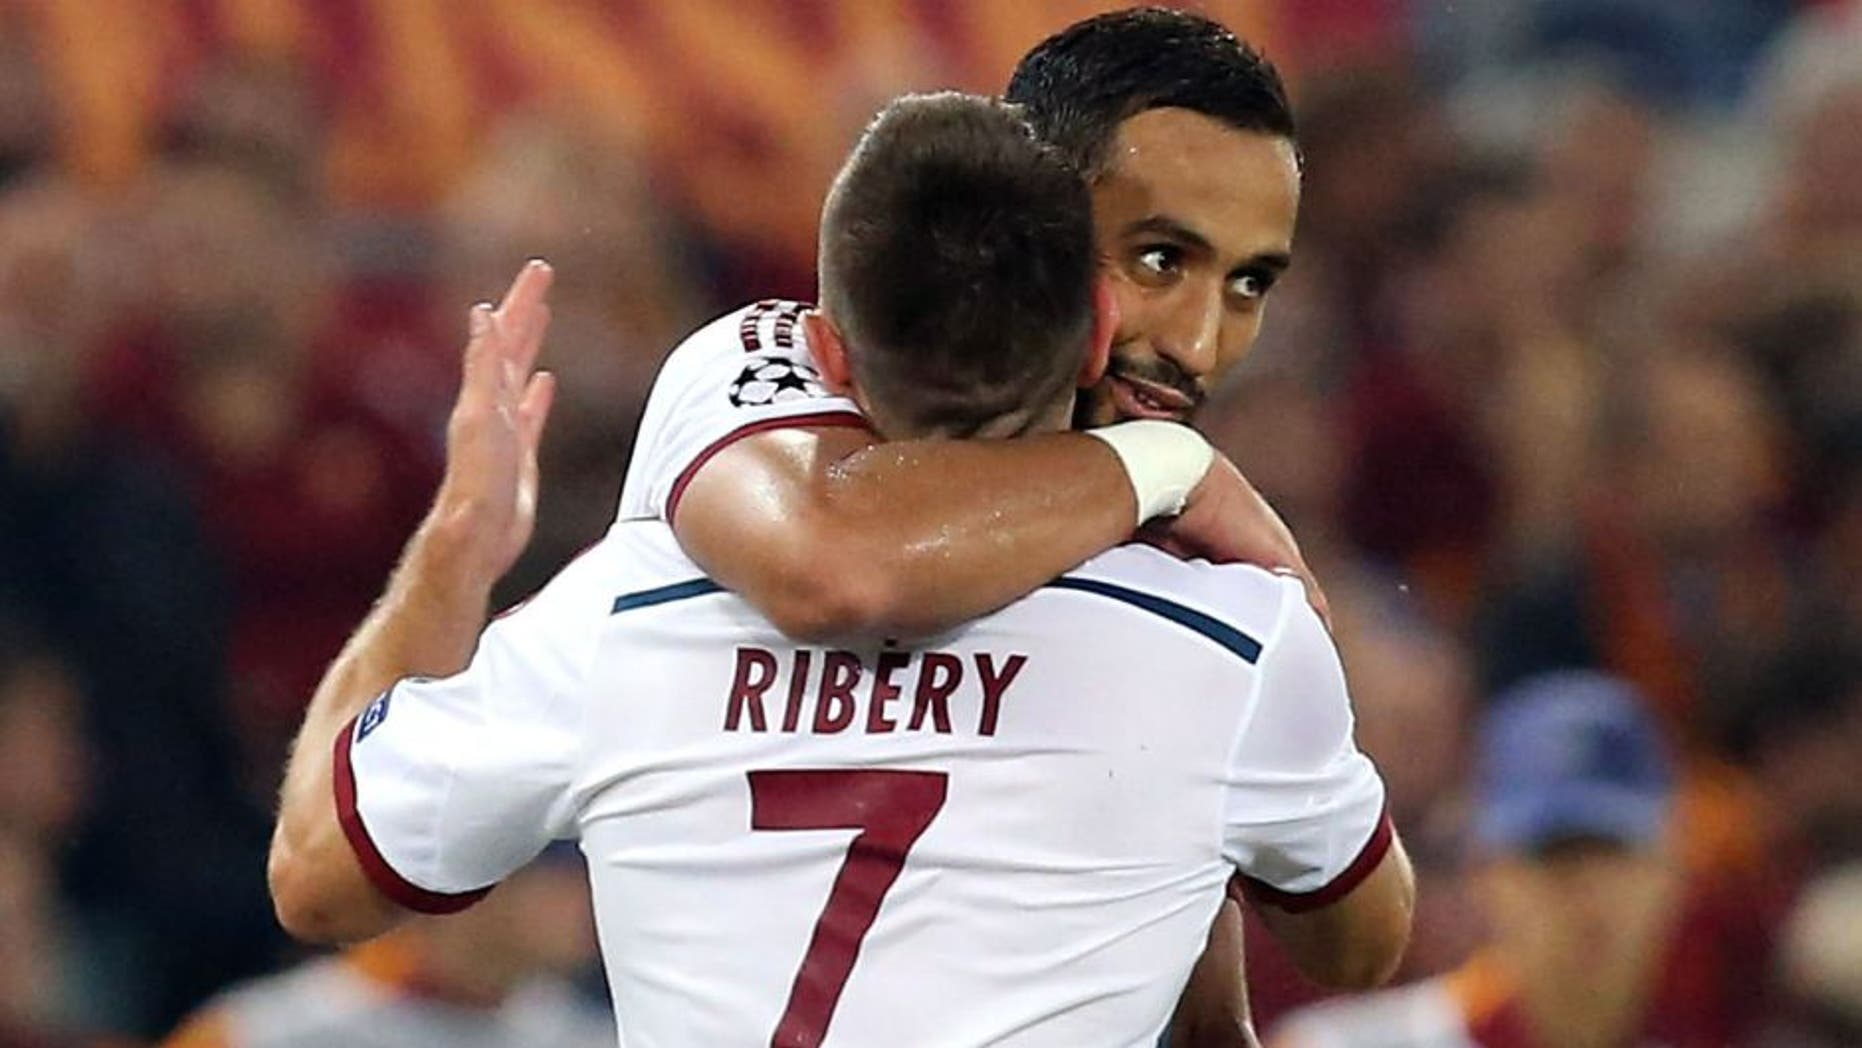 ROME, ITALY - OCTOBER 21: Mehdi Benatia (R) and Franck Ribery of Bayern Muenchen celebrate during the UEFA Champions League match between AS Roma and FC Bayern Munchen at Stadio Olimpico on October 21, 2014 in Rome, Italy (Photo by Maurizio Lagana/Getty Images)